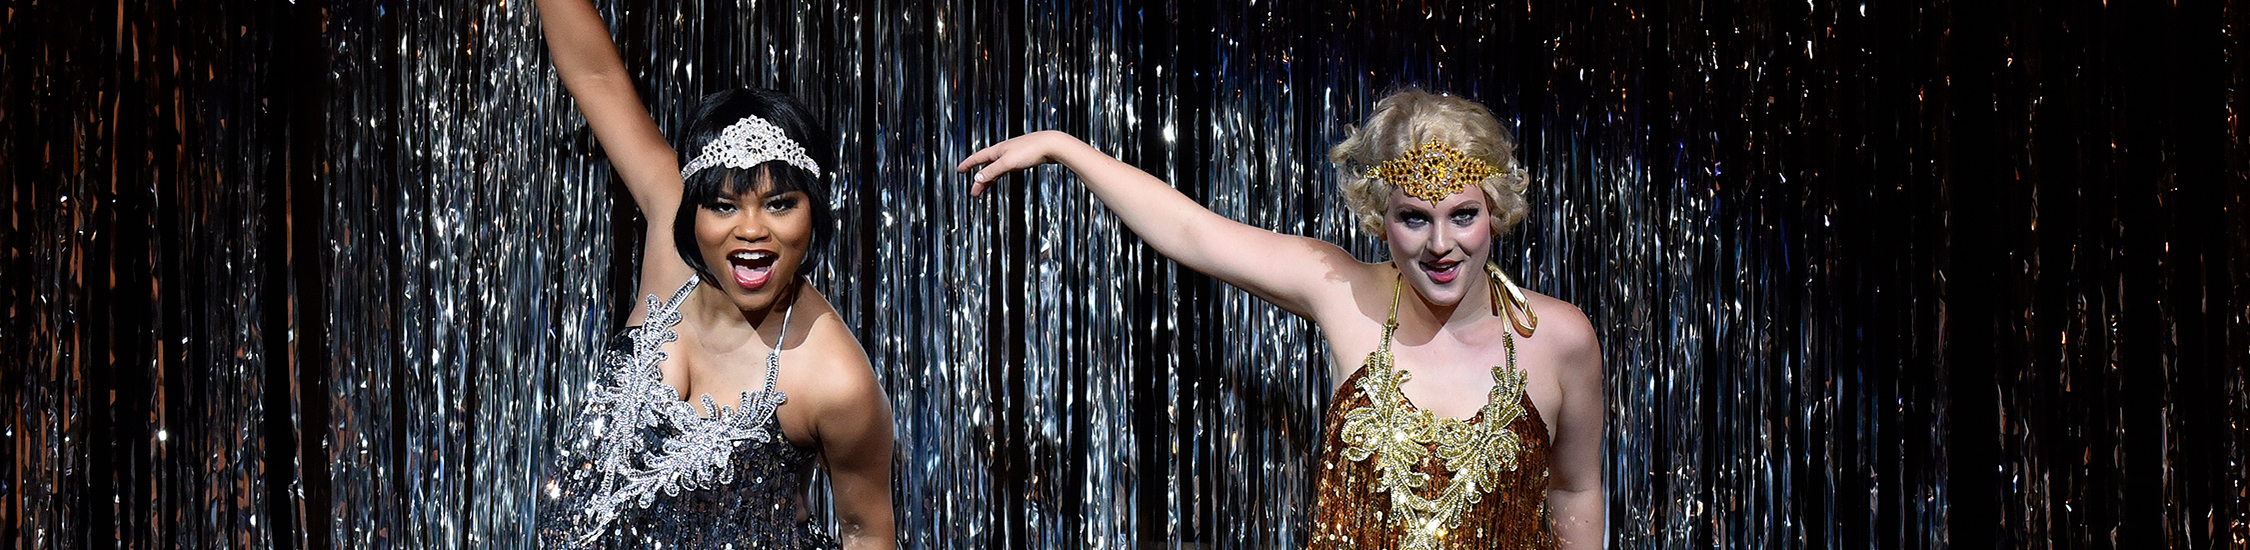 two students performing in sparkly dresses